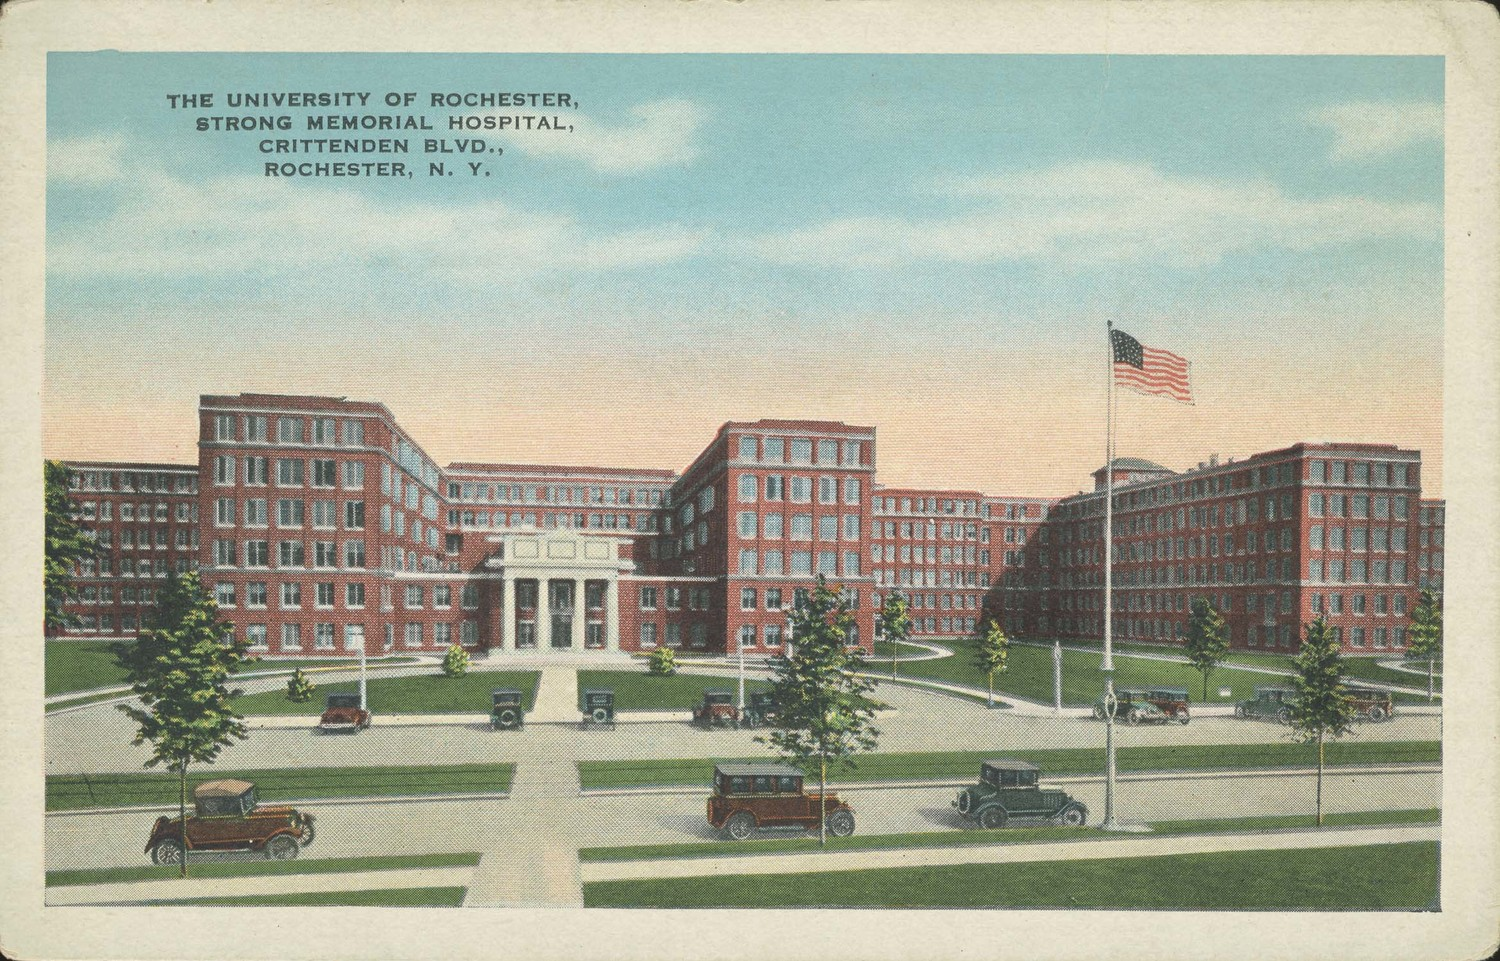 The University of Rochester, Strong Memorial Hospital, Crittenden Blvd., Rochester, N.Y.